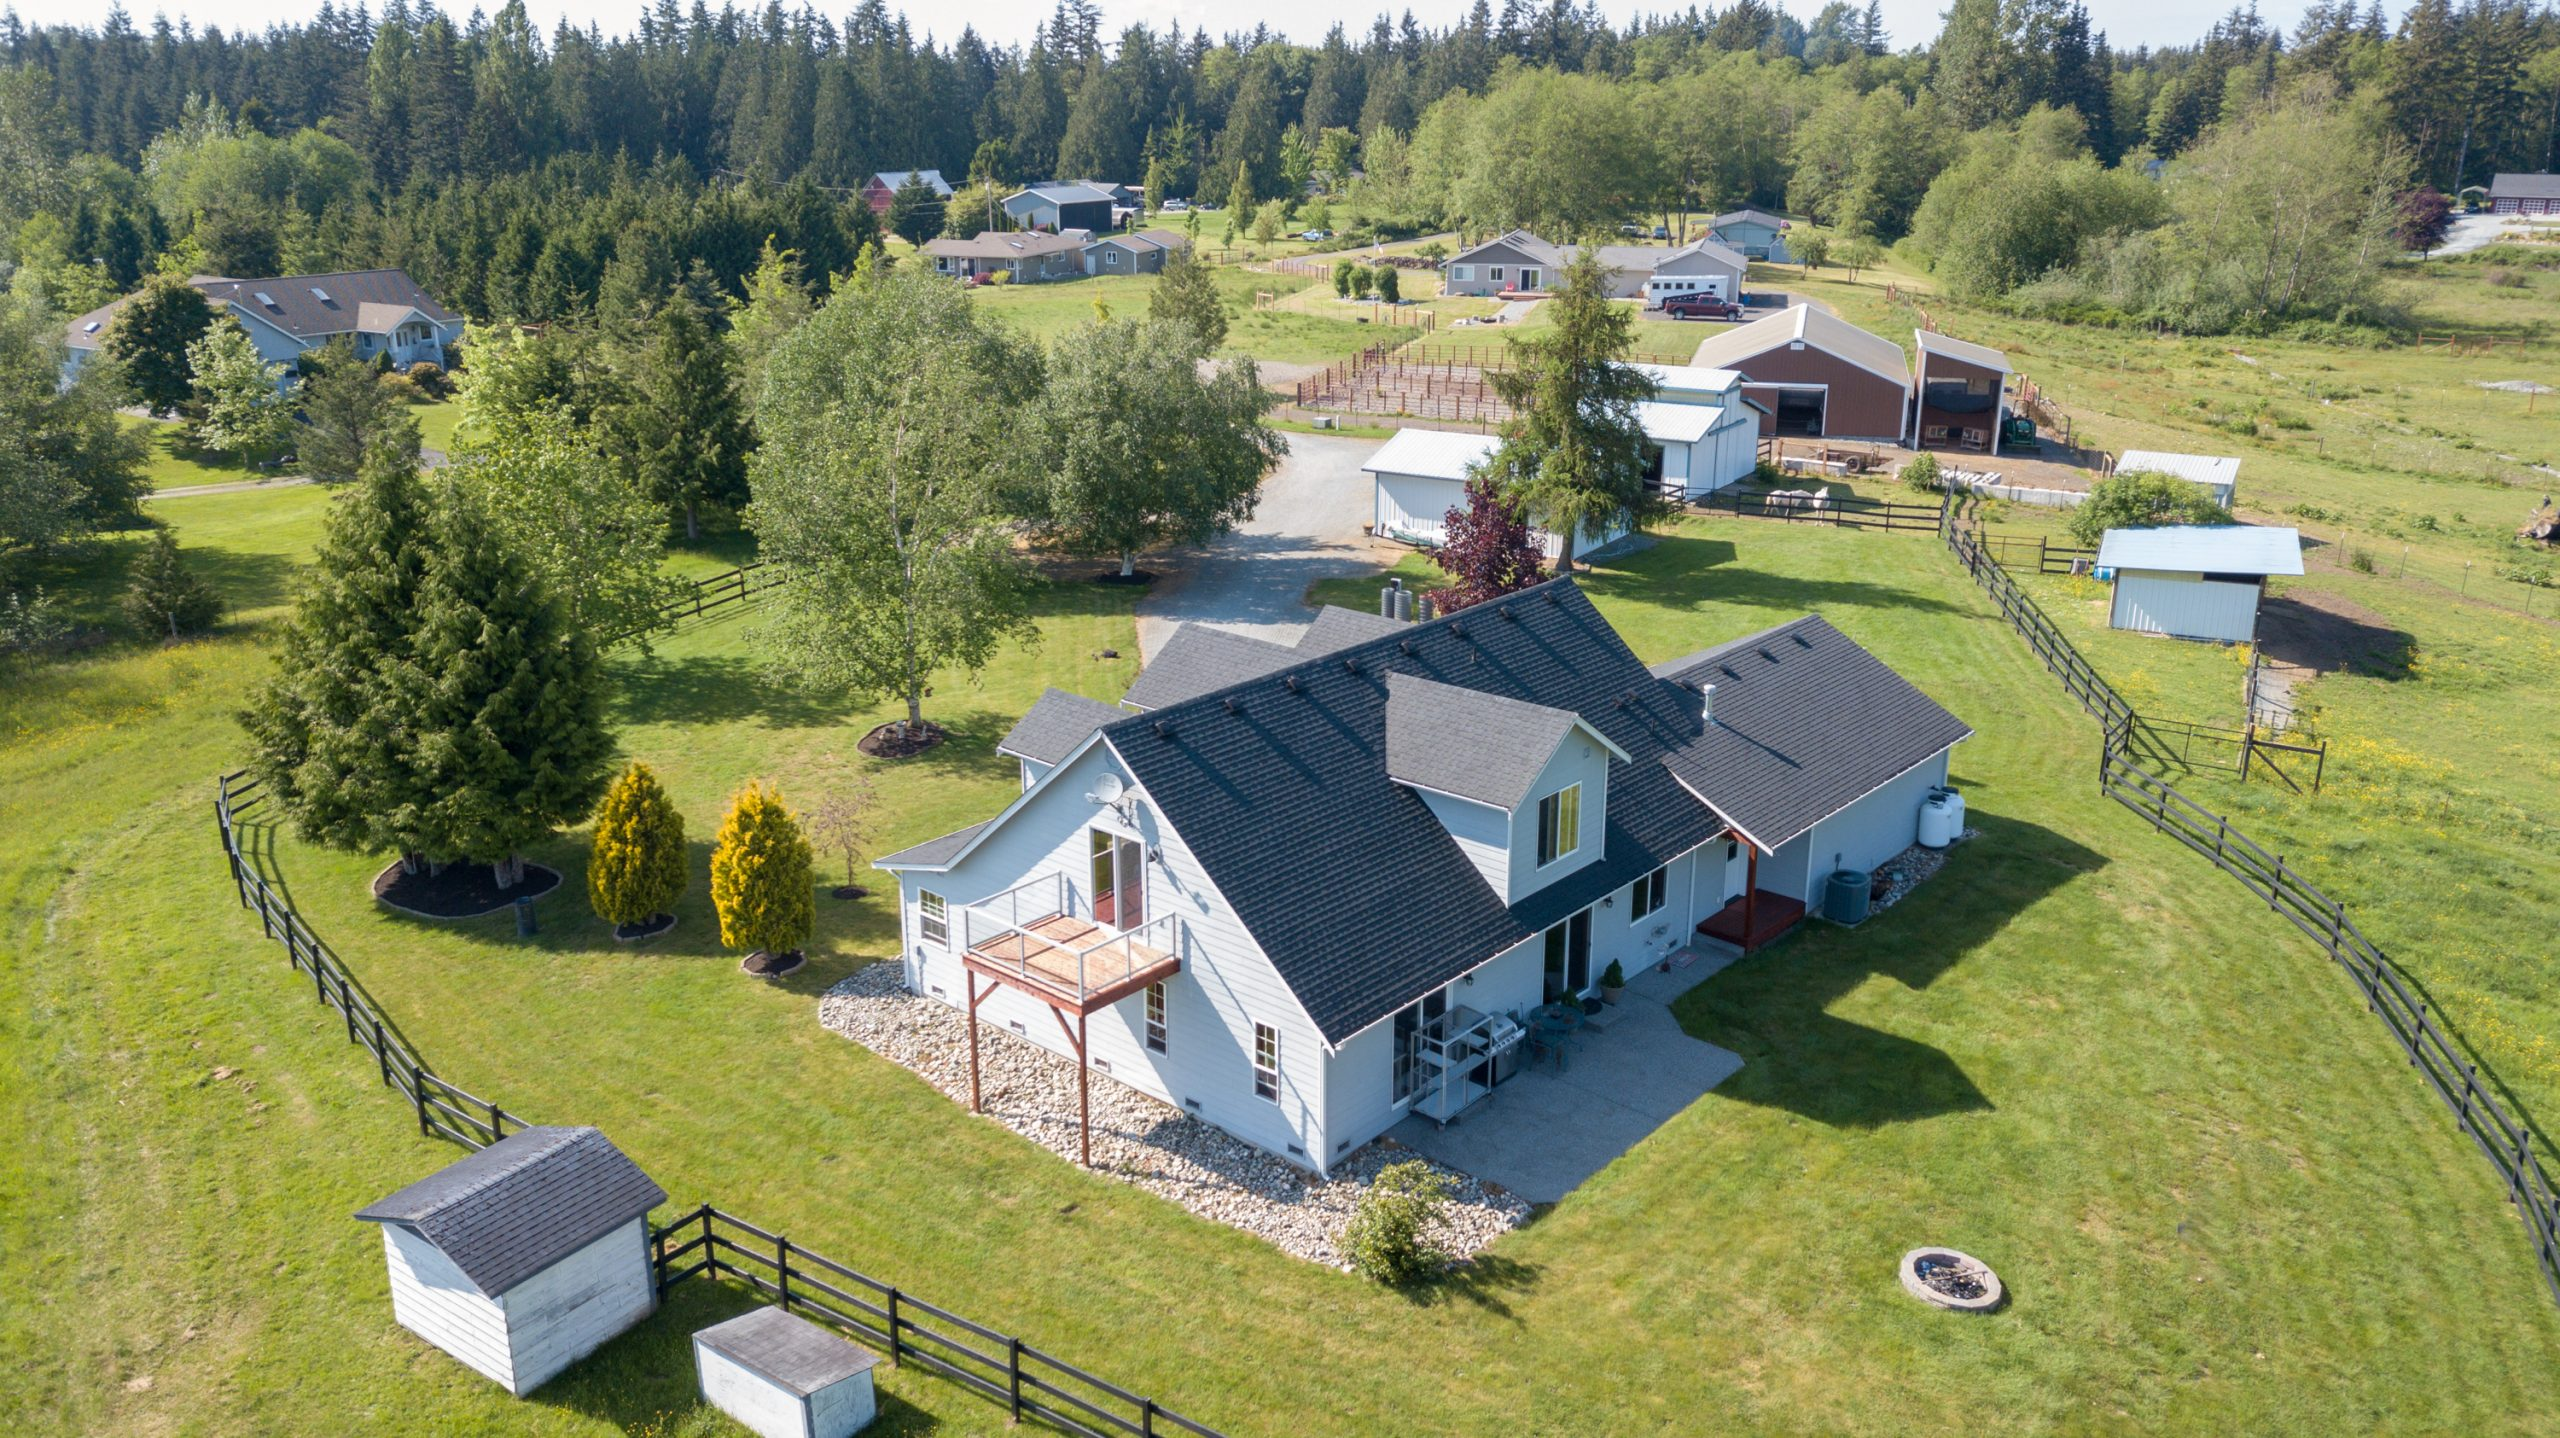 Drone photo of single farm house with grey roof and large green grass yard.